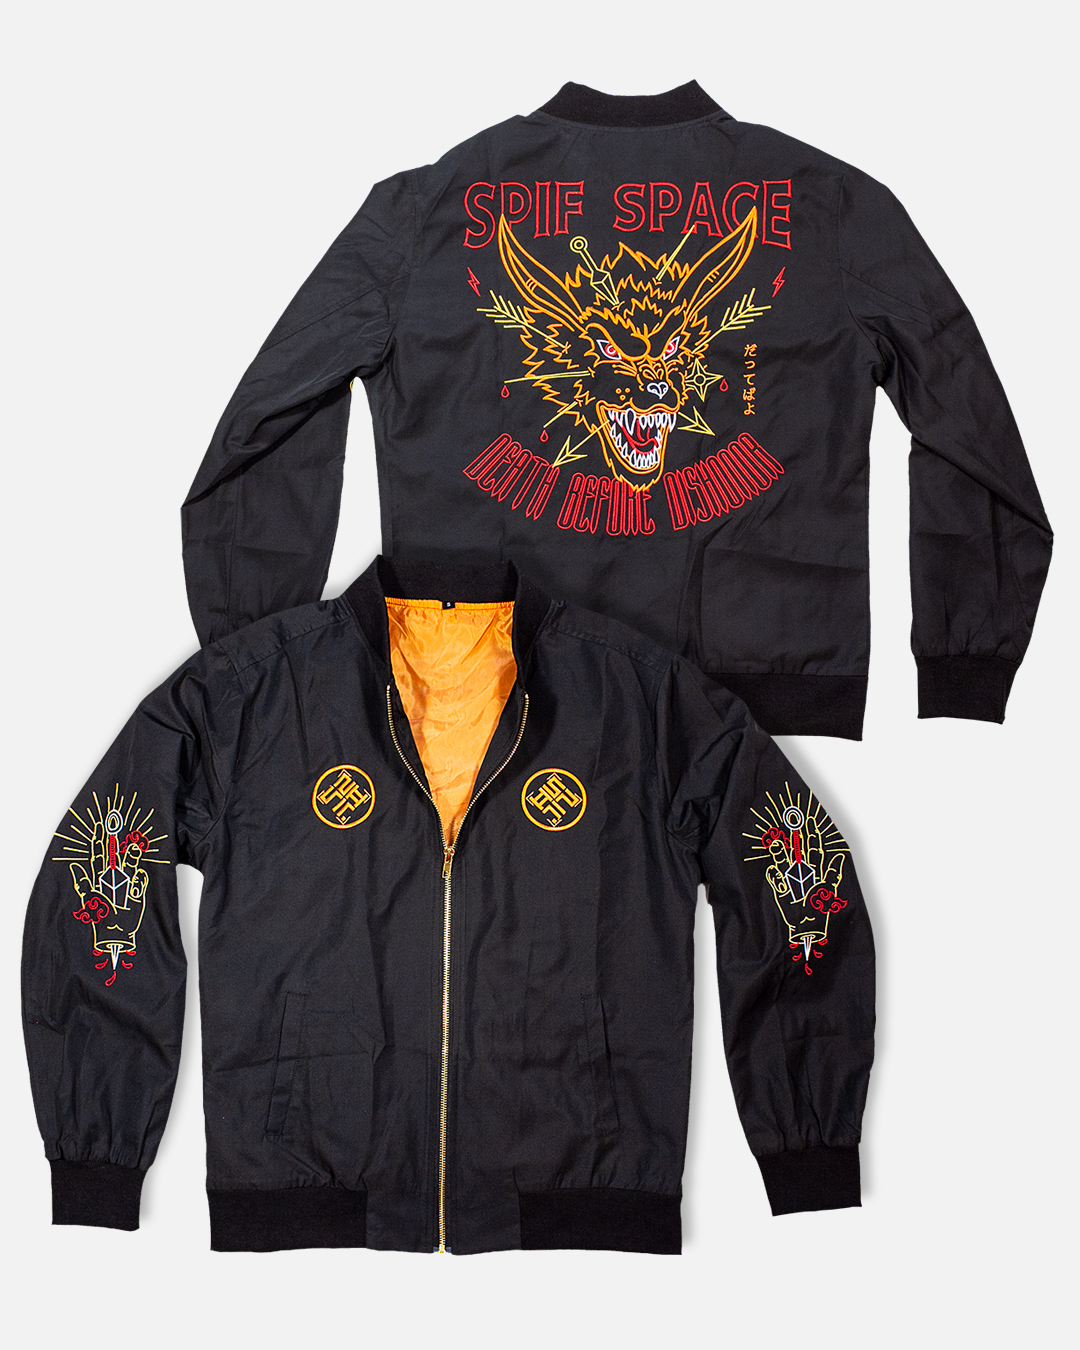 DEATH BEFORE DISHONOR SPRING JACKET